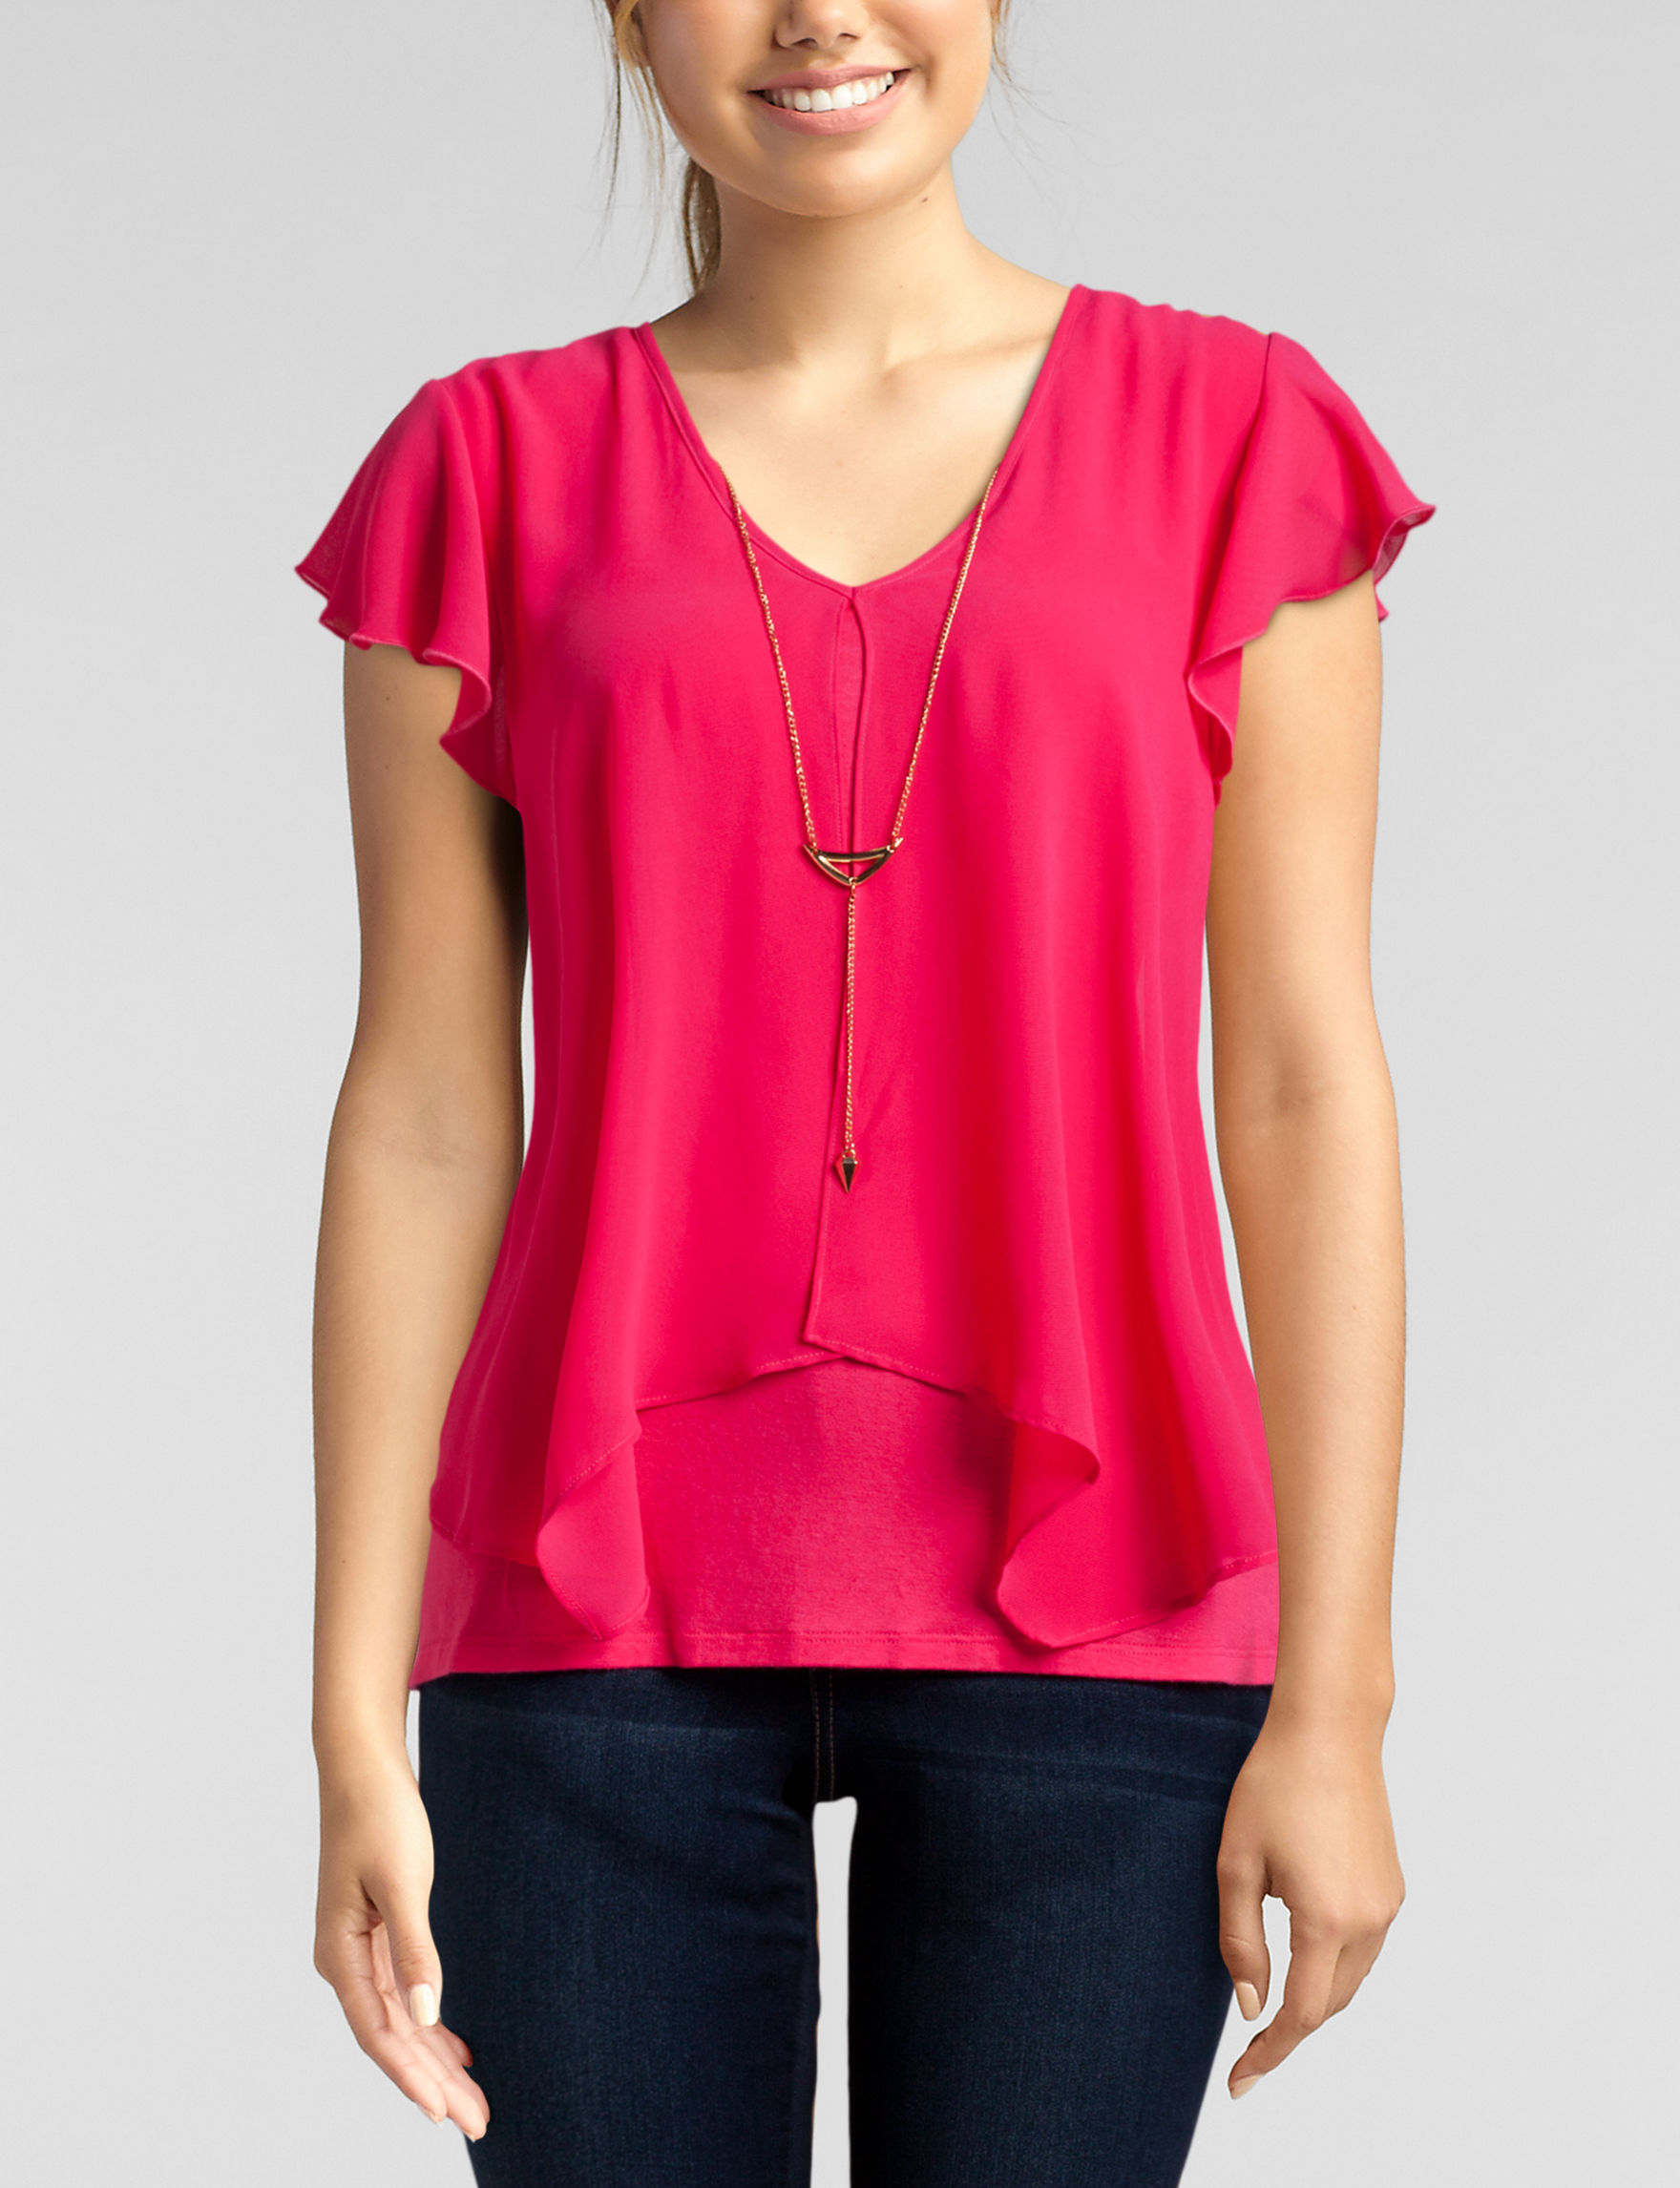 A. Byer Hot Pink Everyday & Casual Shirts & Blouses